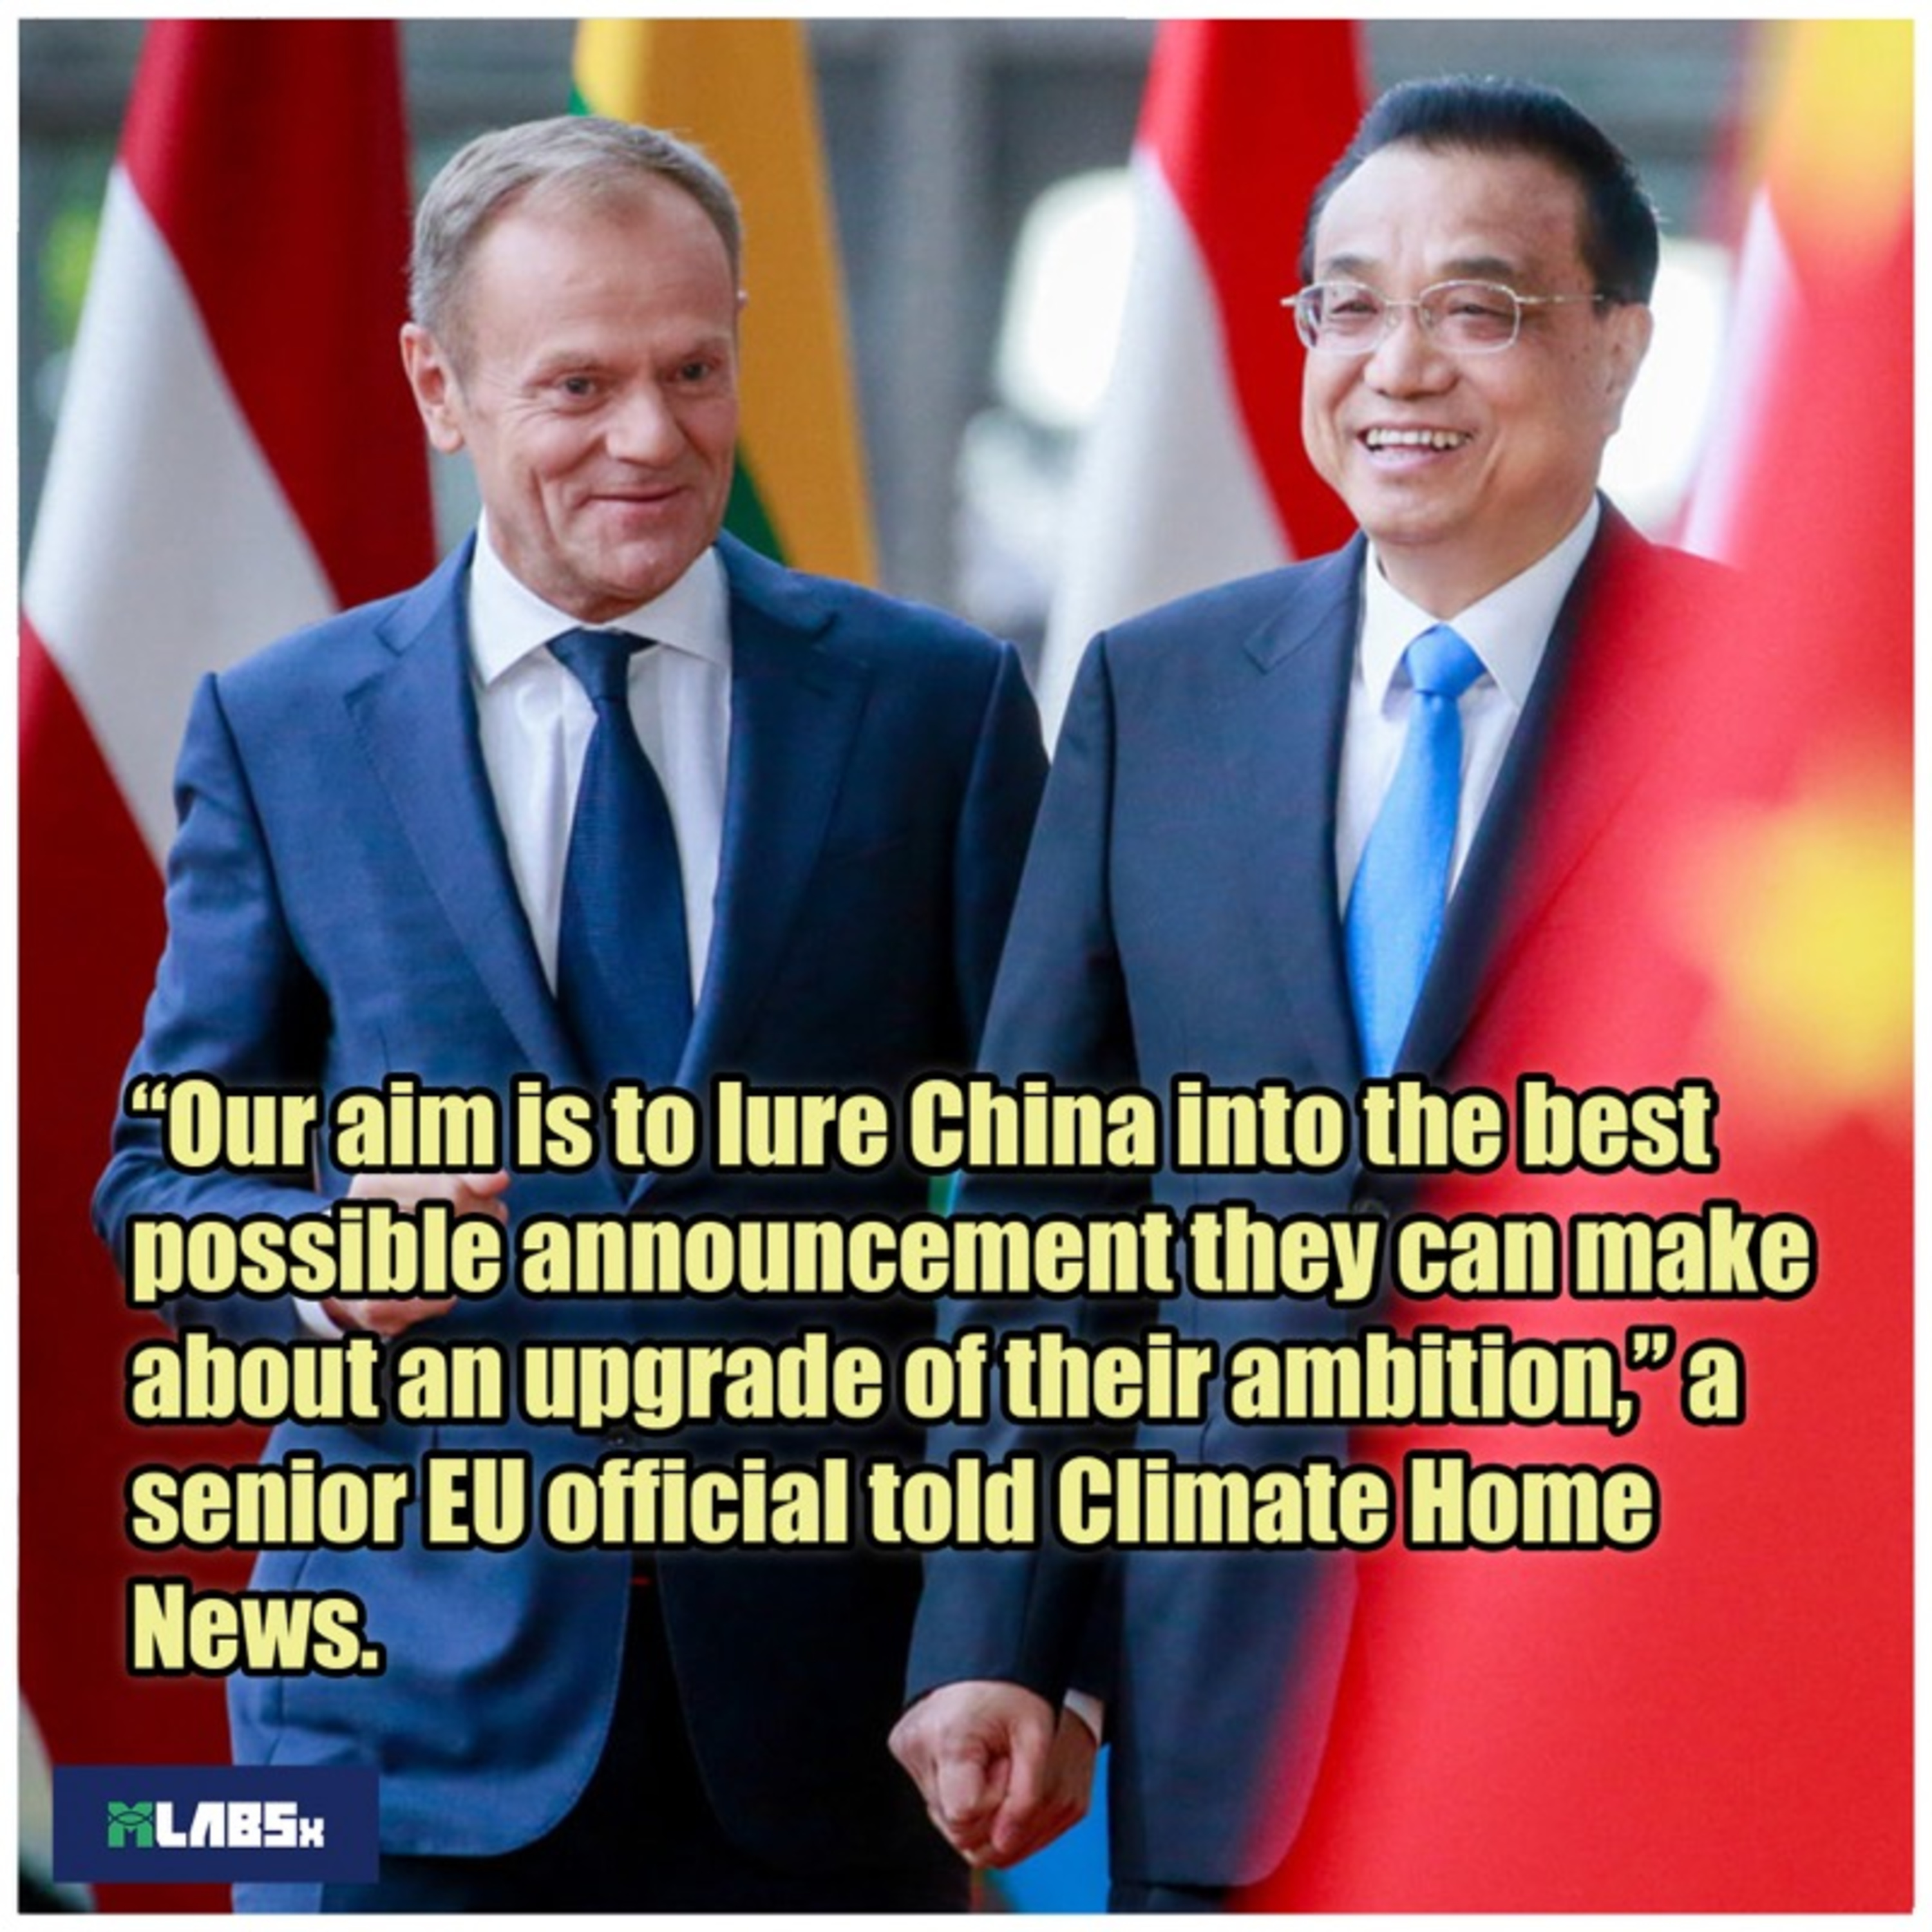 EU is creating Climate Deal with China.